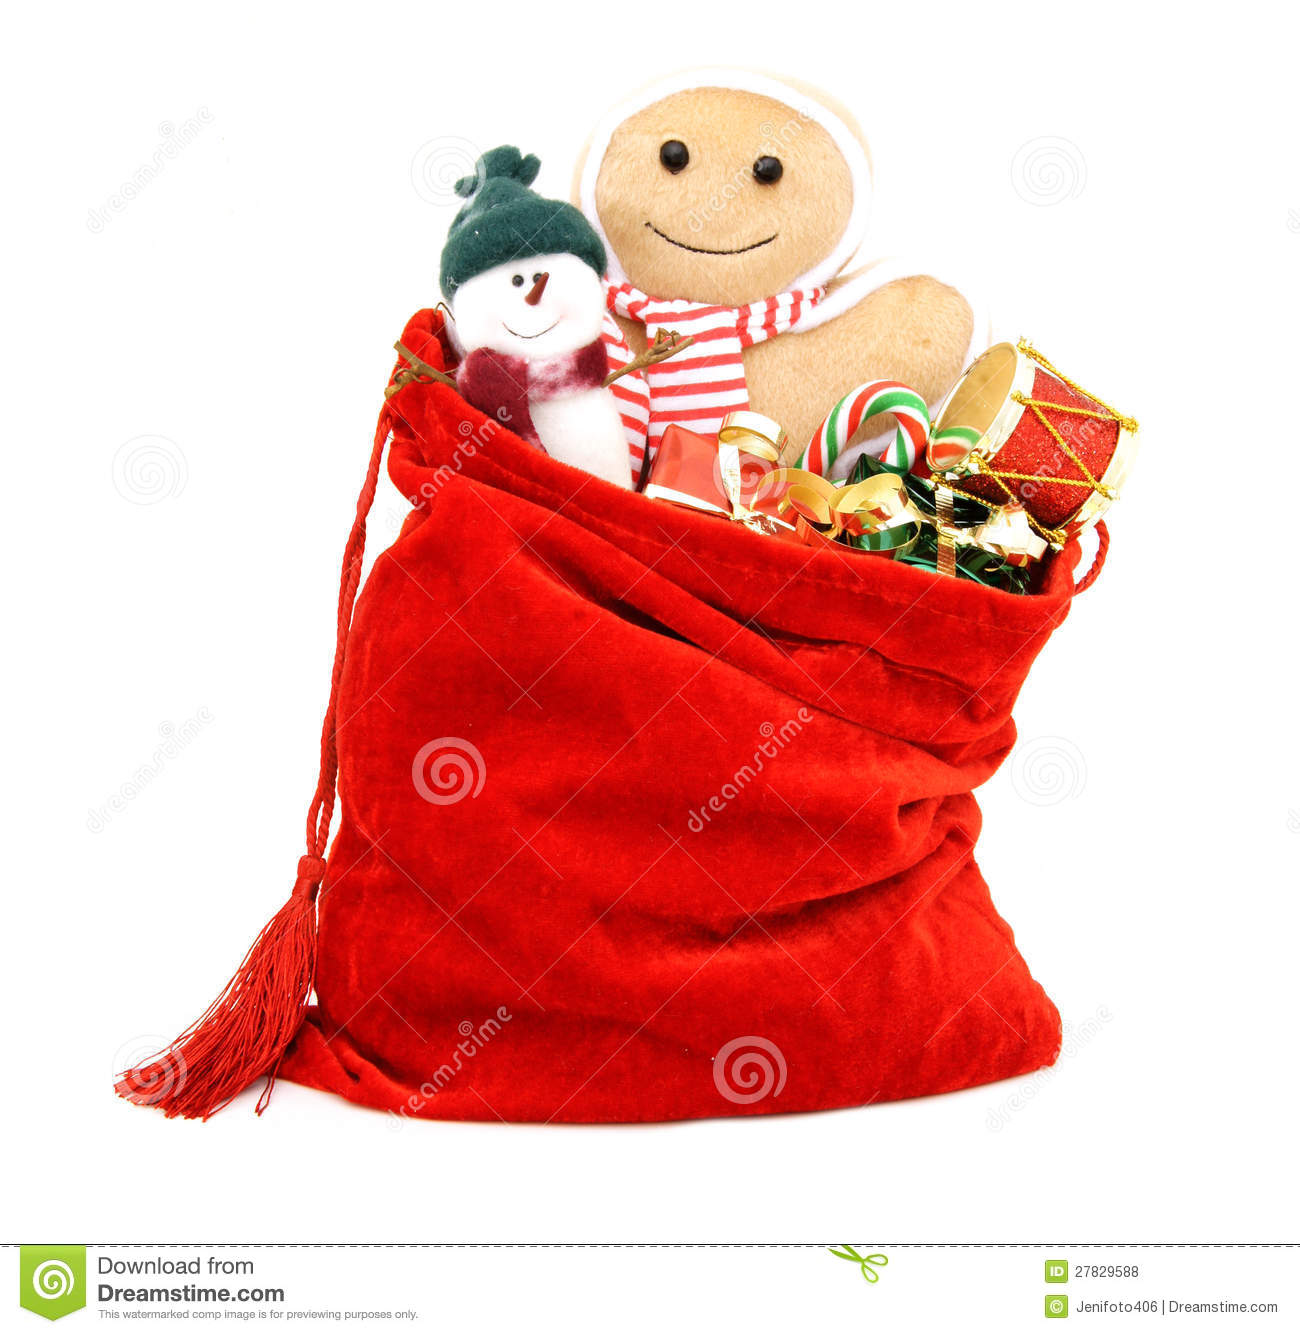 Bag Of Toys : Christmas gifts and toys royalty free stock photos image